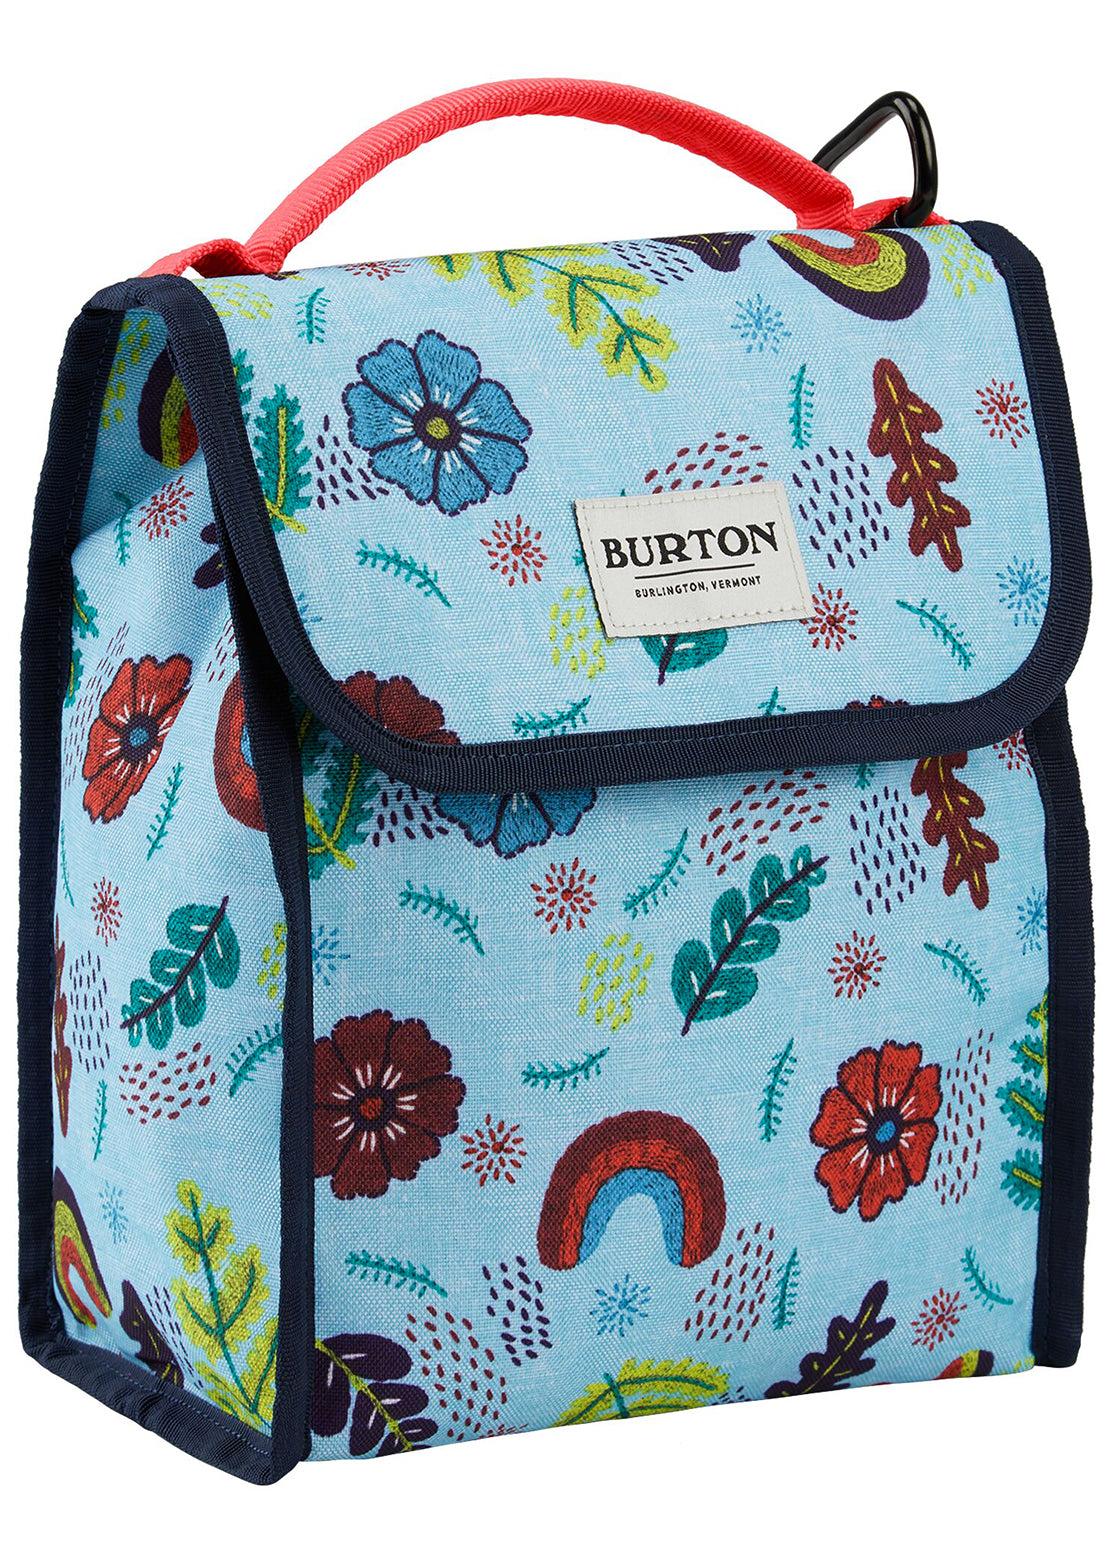 Burton Lunch Sack 6L Cooler Bag Embroidered Floral Print